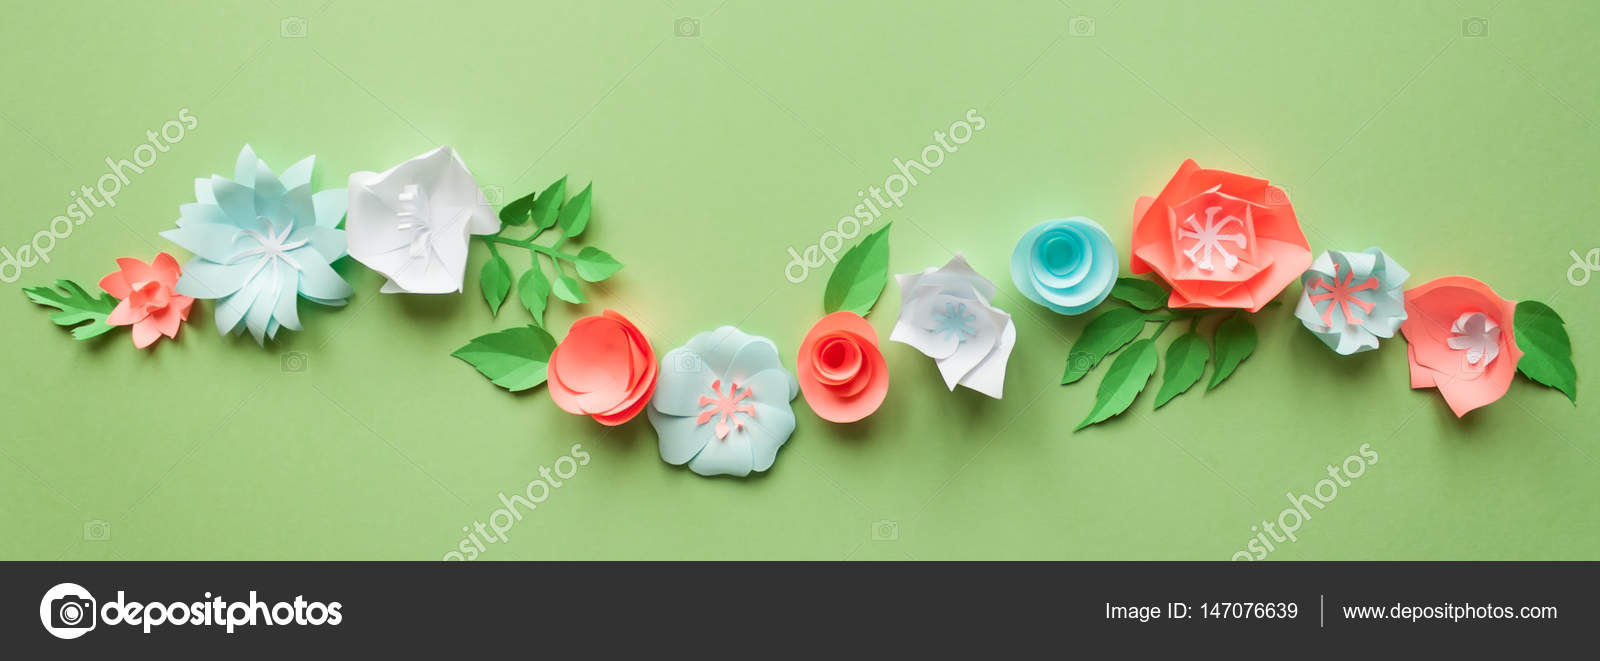 Frame with color paper flowers on the green background flat lay frame with color paper flowers on the green background flat lay nature concept mightylinksfo